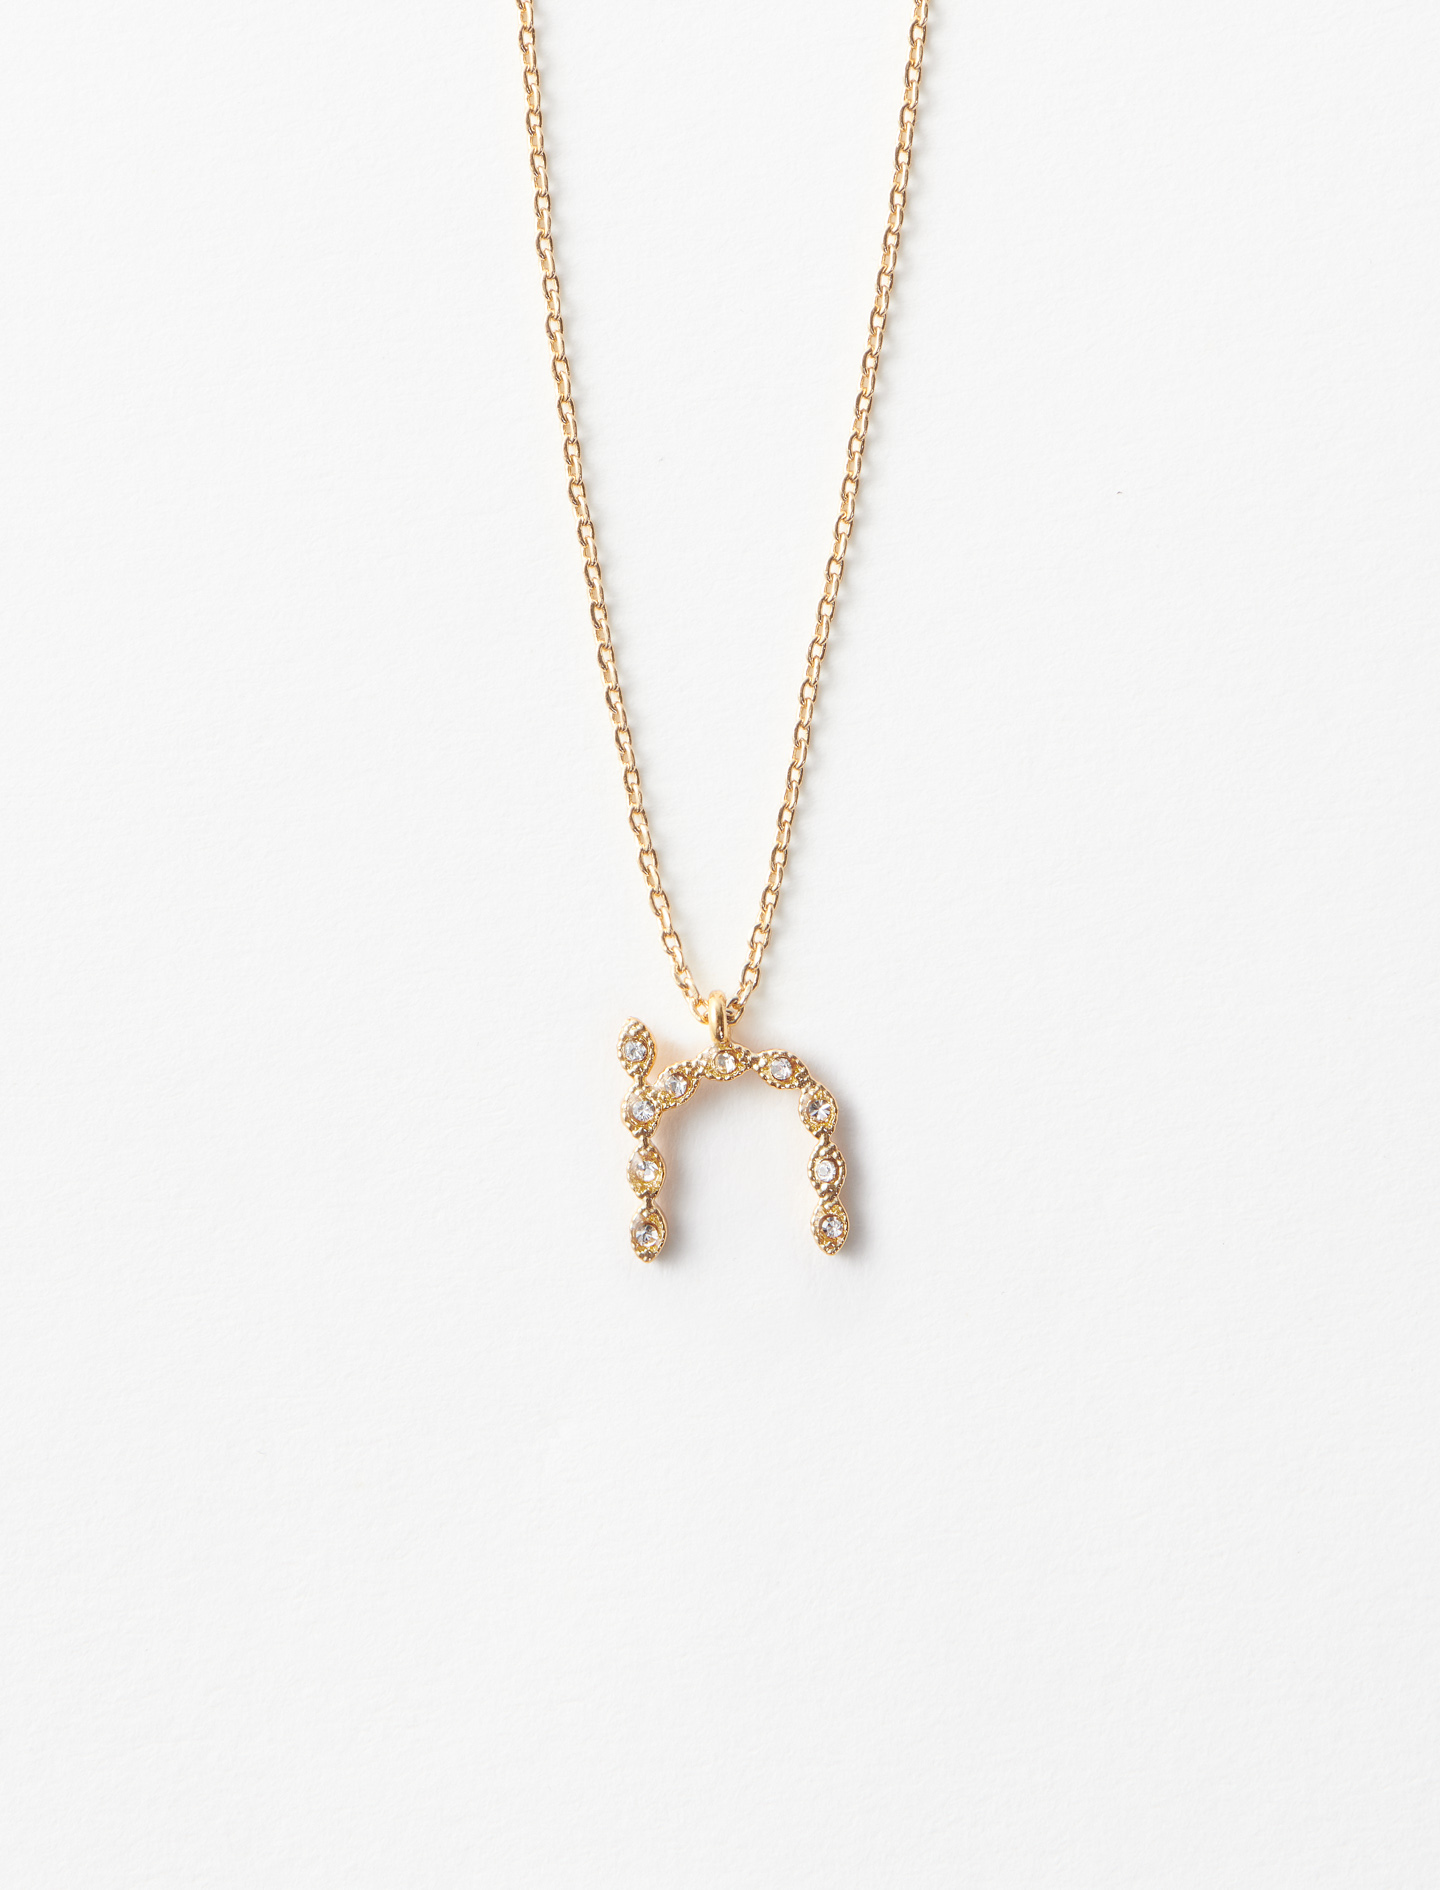 Rhinestone N necklace - Gold